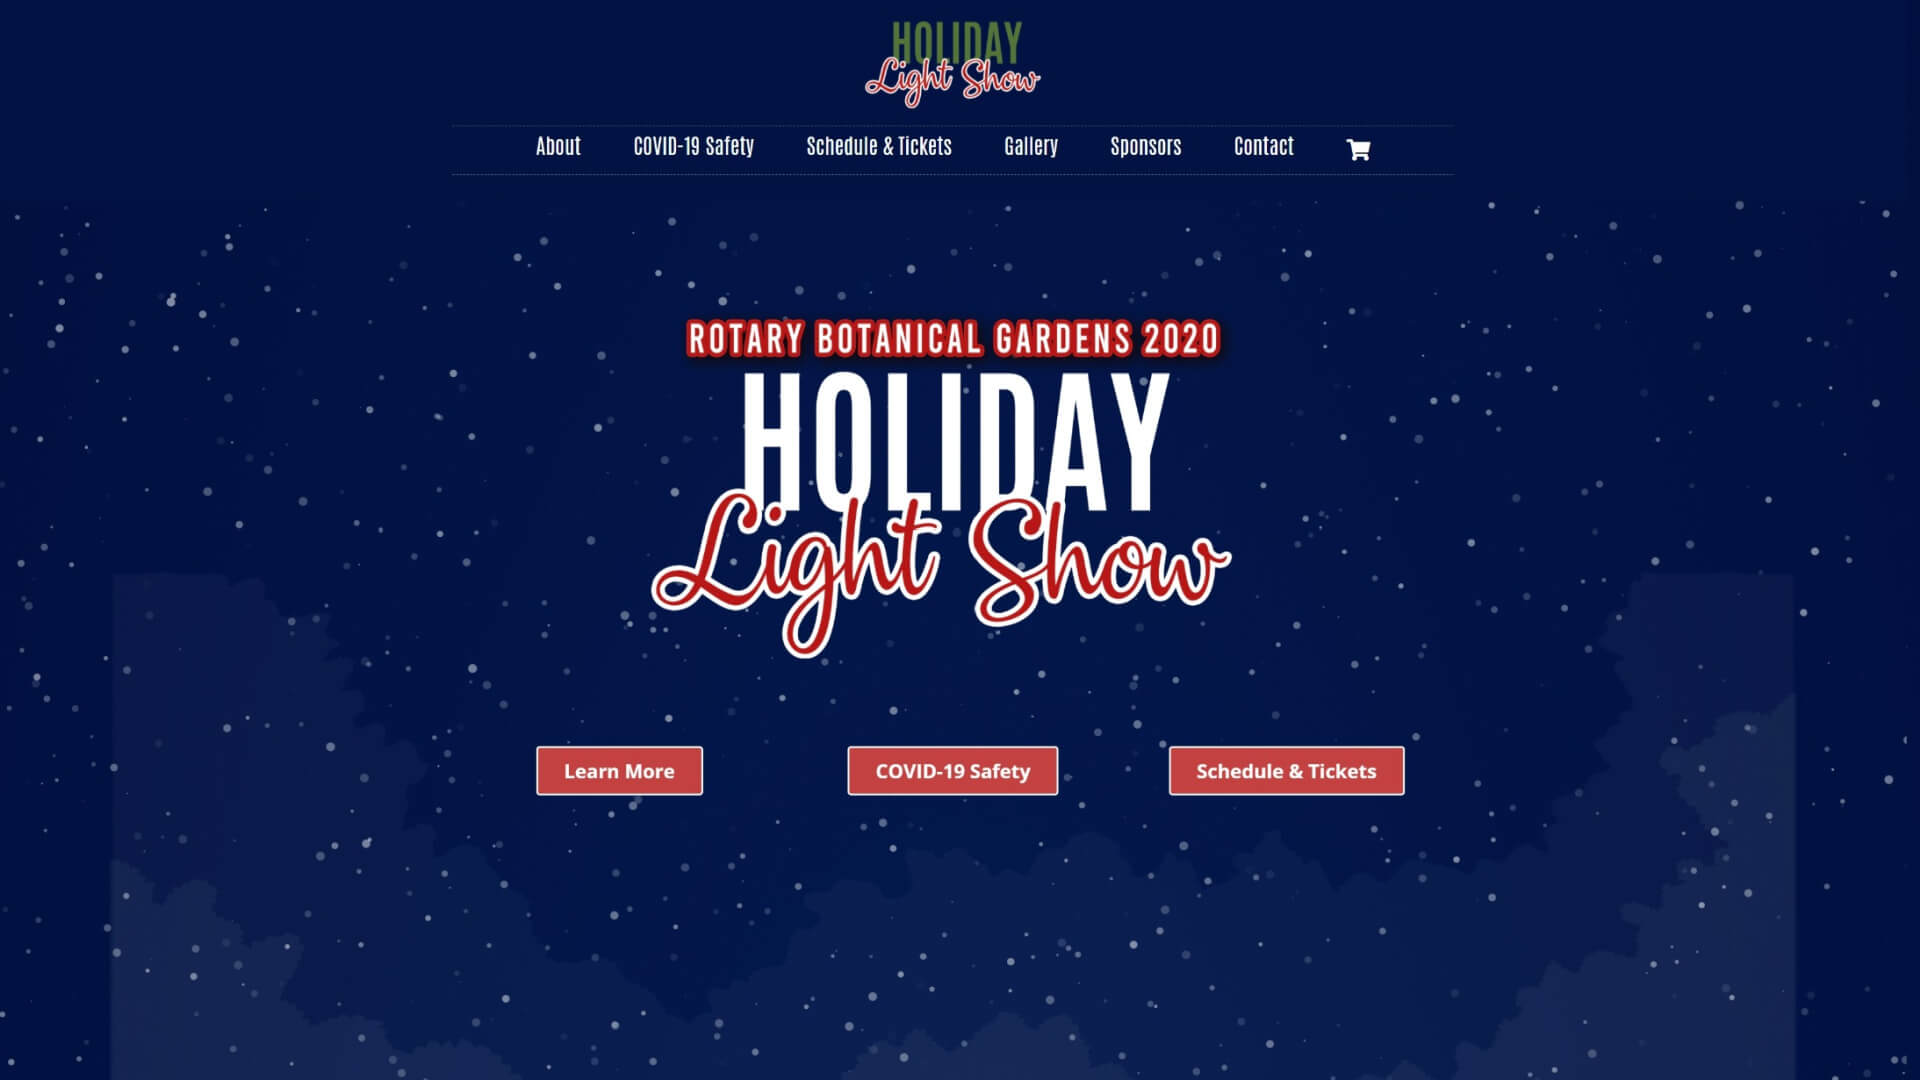 Screenshot of RBG Holiday Light Show homepage from Jan. 1, 2020